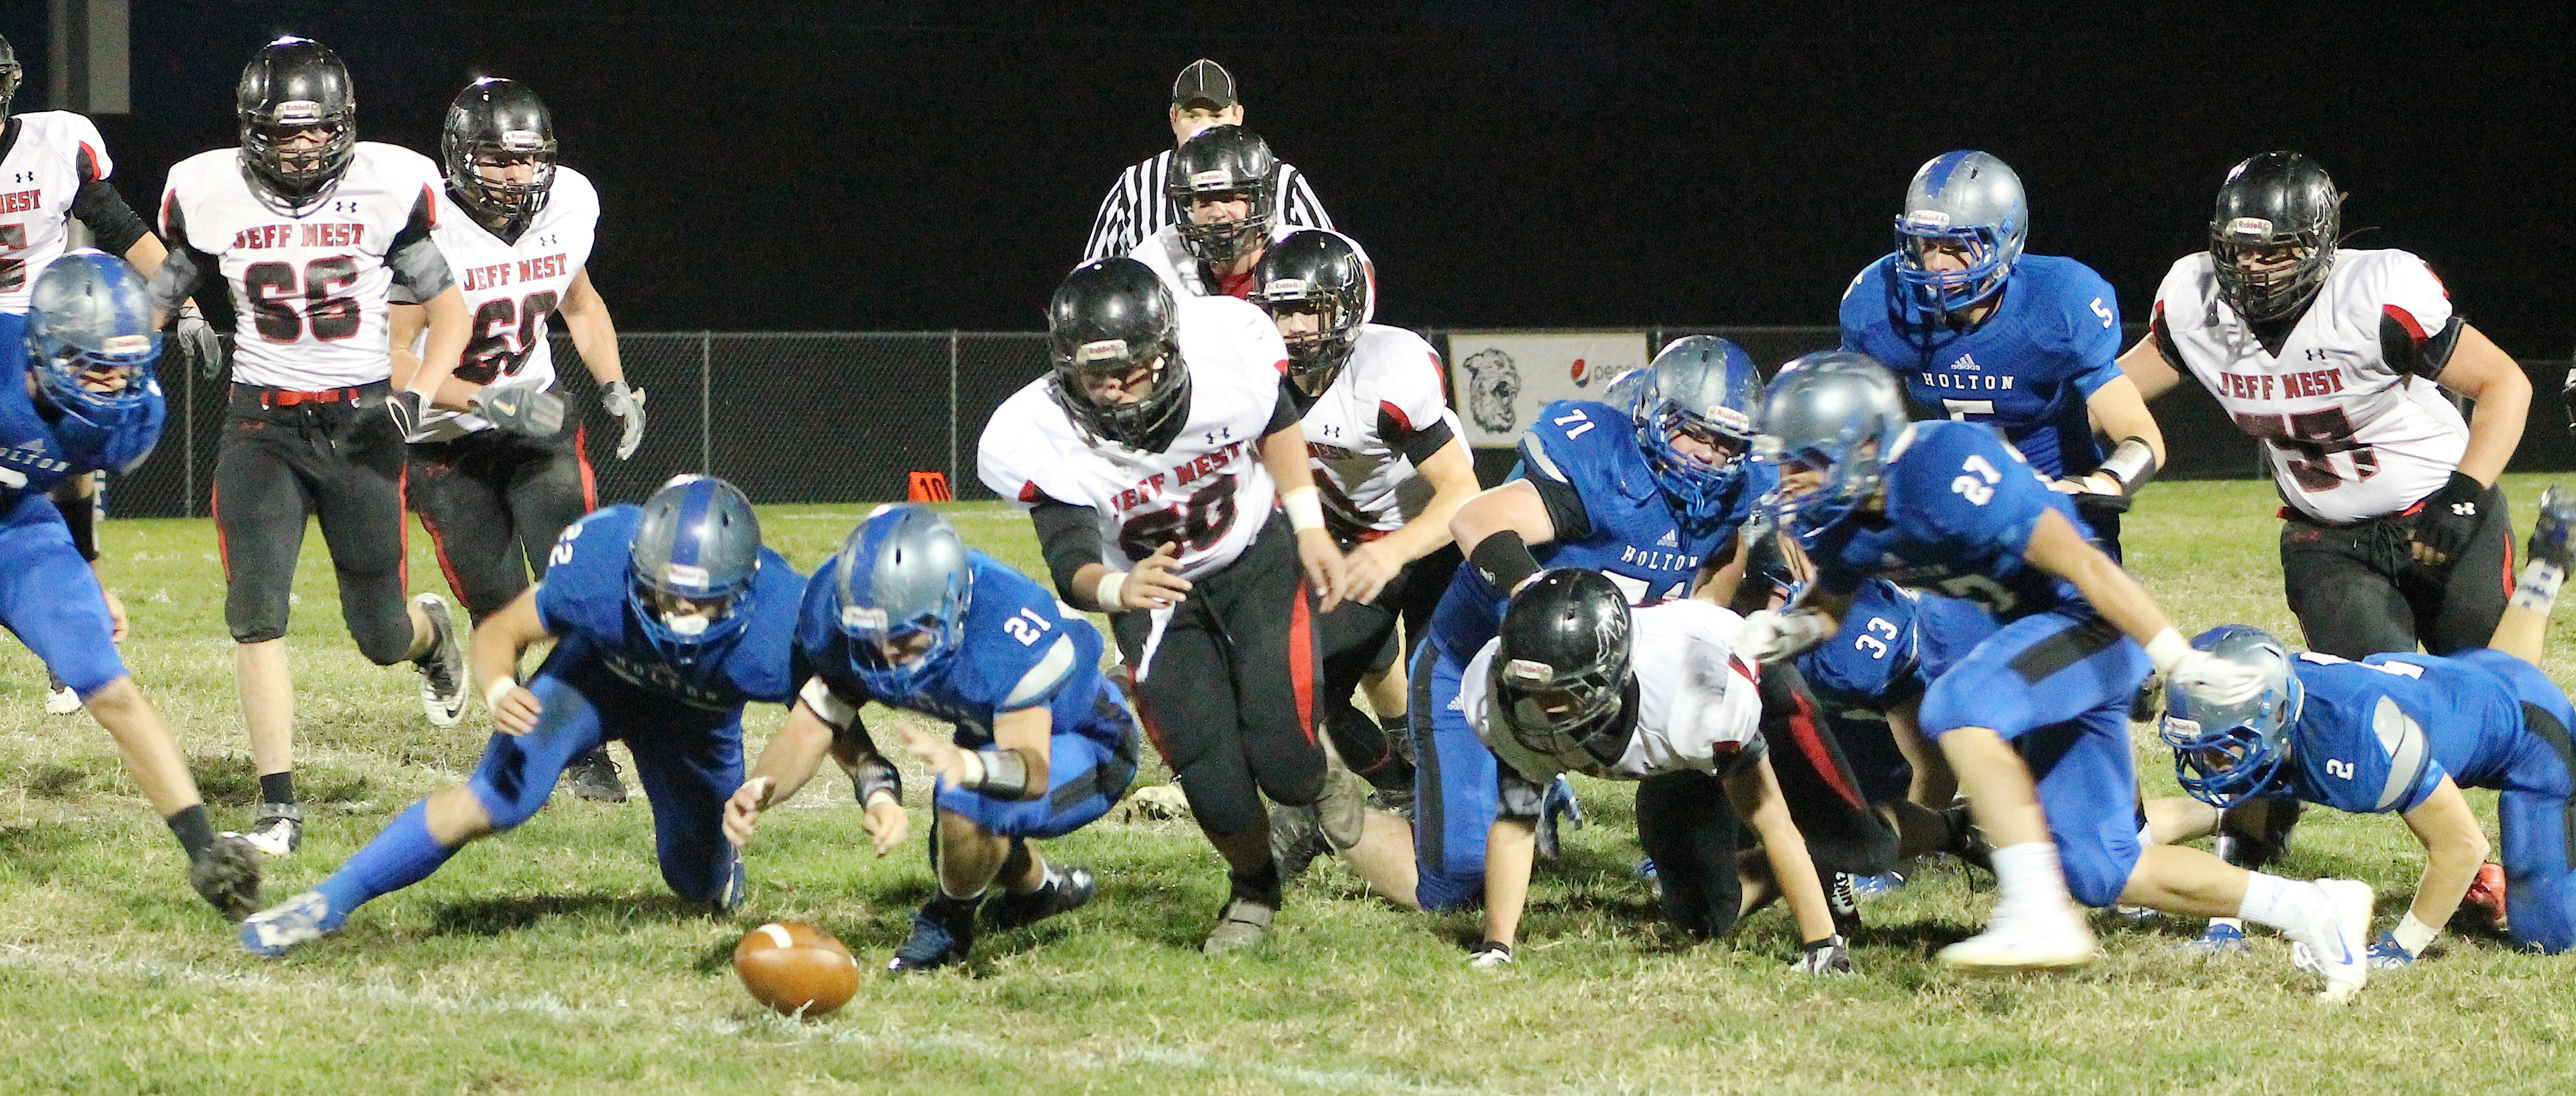 Holton linebackers Indie Allen (lower left) and Mason Barta (lower right) dive for a loose ball early in the game against Jeff West. Barta recovered the football and HHS went on to score on the very next play on the way to a 38-6 victory.